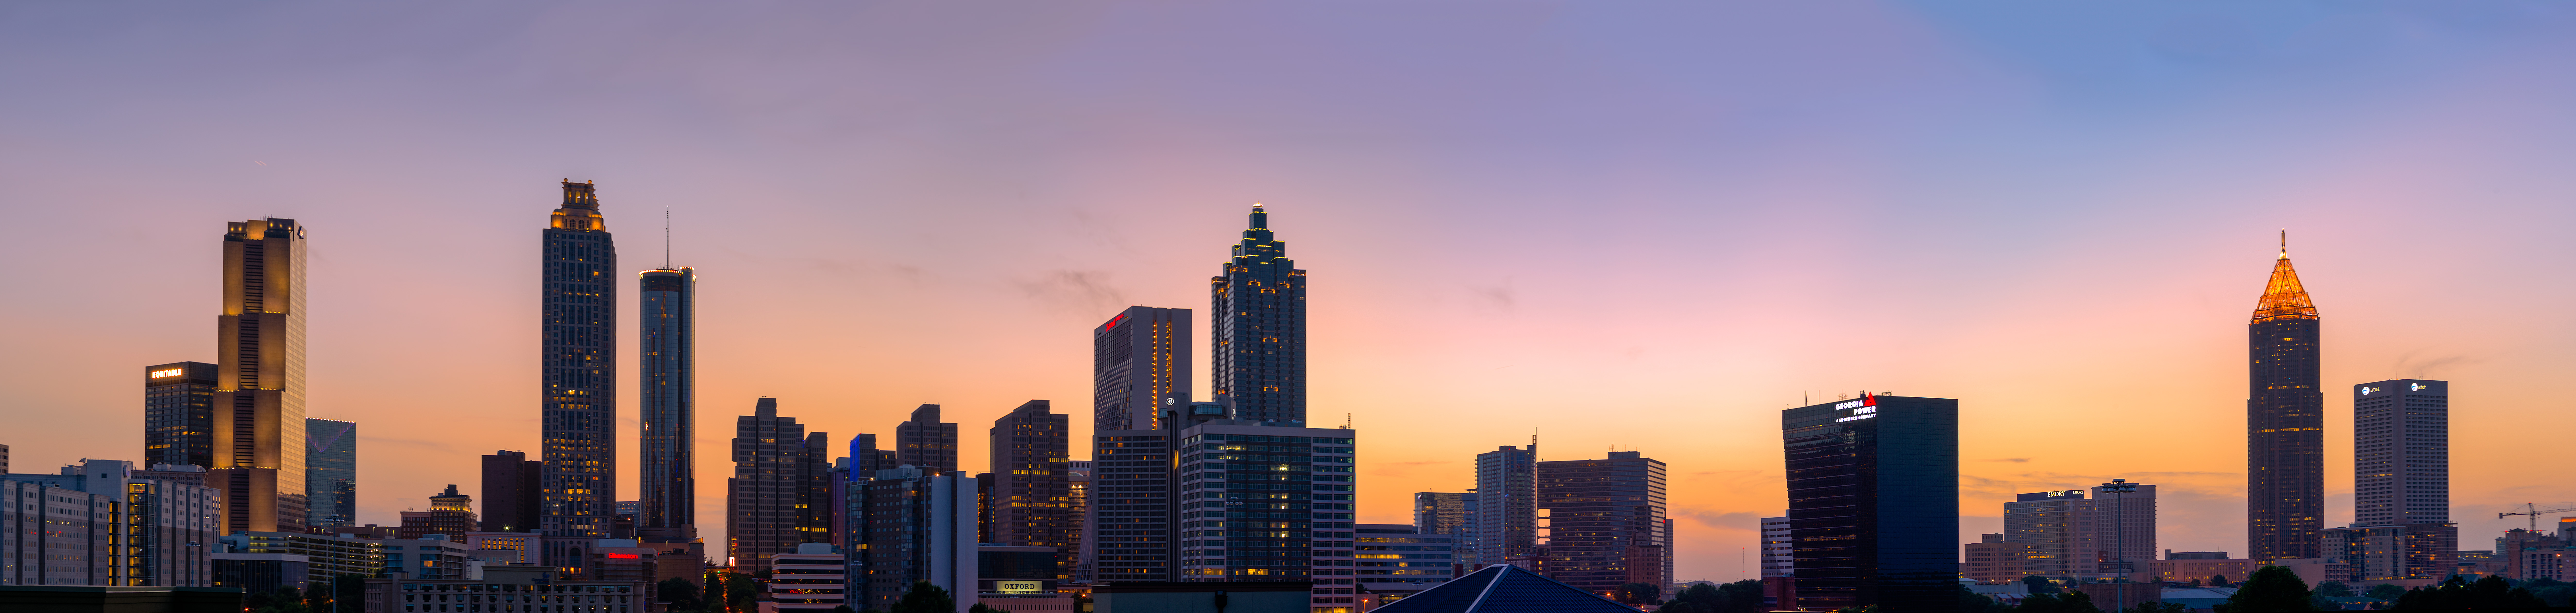 A picture of the Atlanta skyline at sunset.